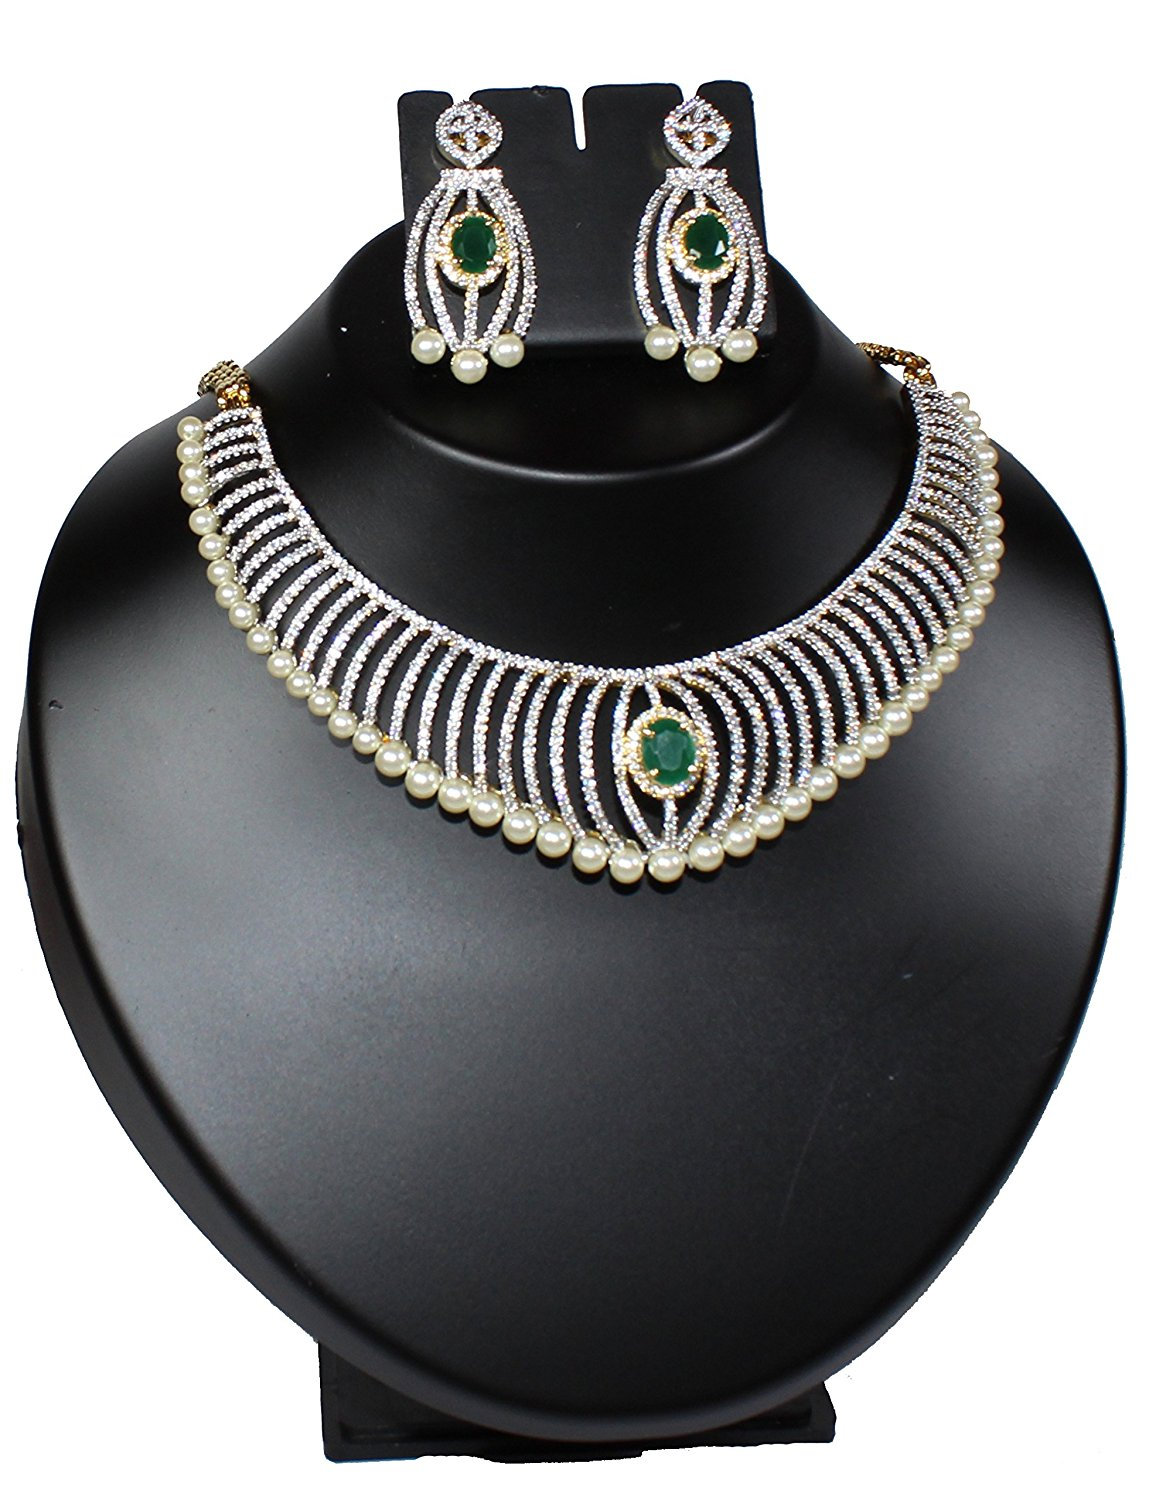 Alekip High Grade Rhodium Cz Necklace Set With Elegant Pearls & Semi Precious Emerald For Women